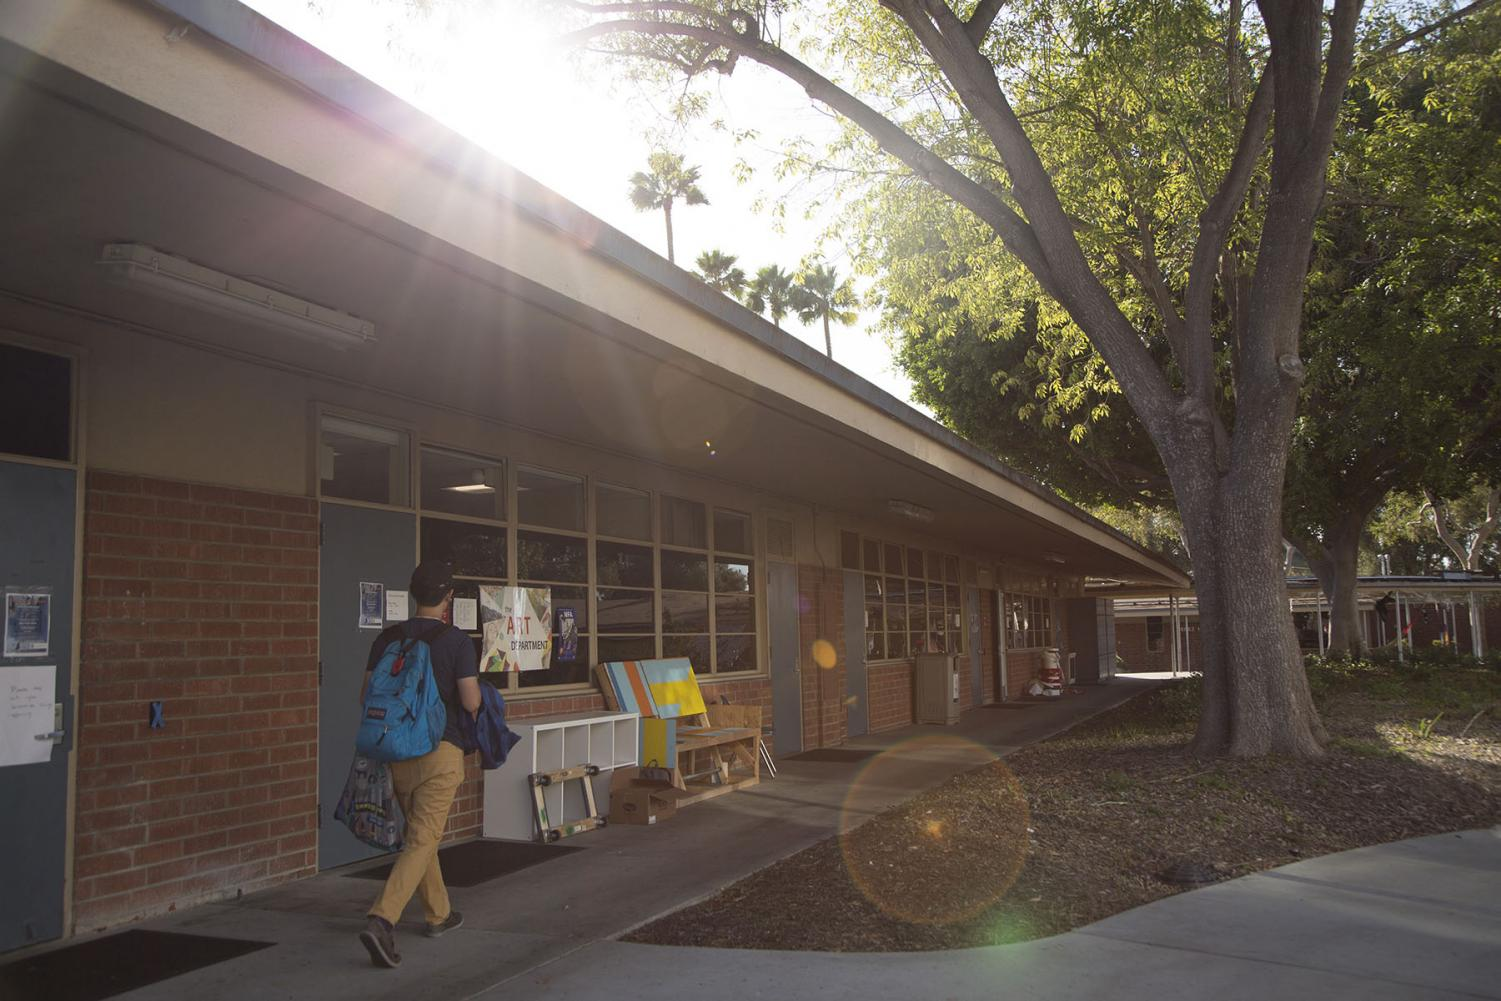 Mosquitoes have been swarming areas near the art department, particularly during the daytime and near the ceramics lab, wood shop and sculpture yard.